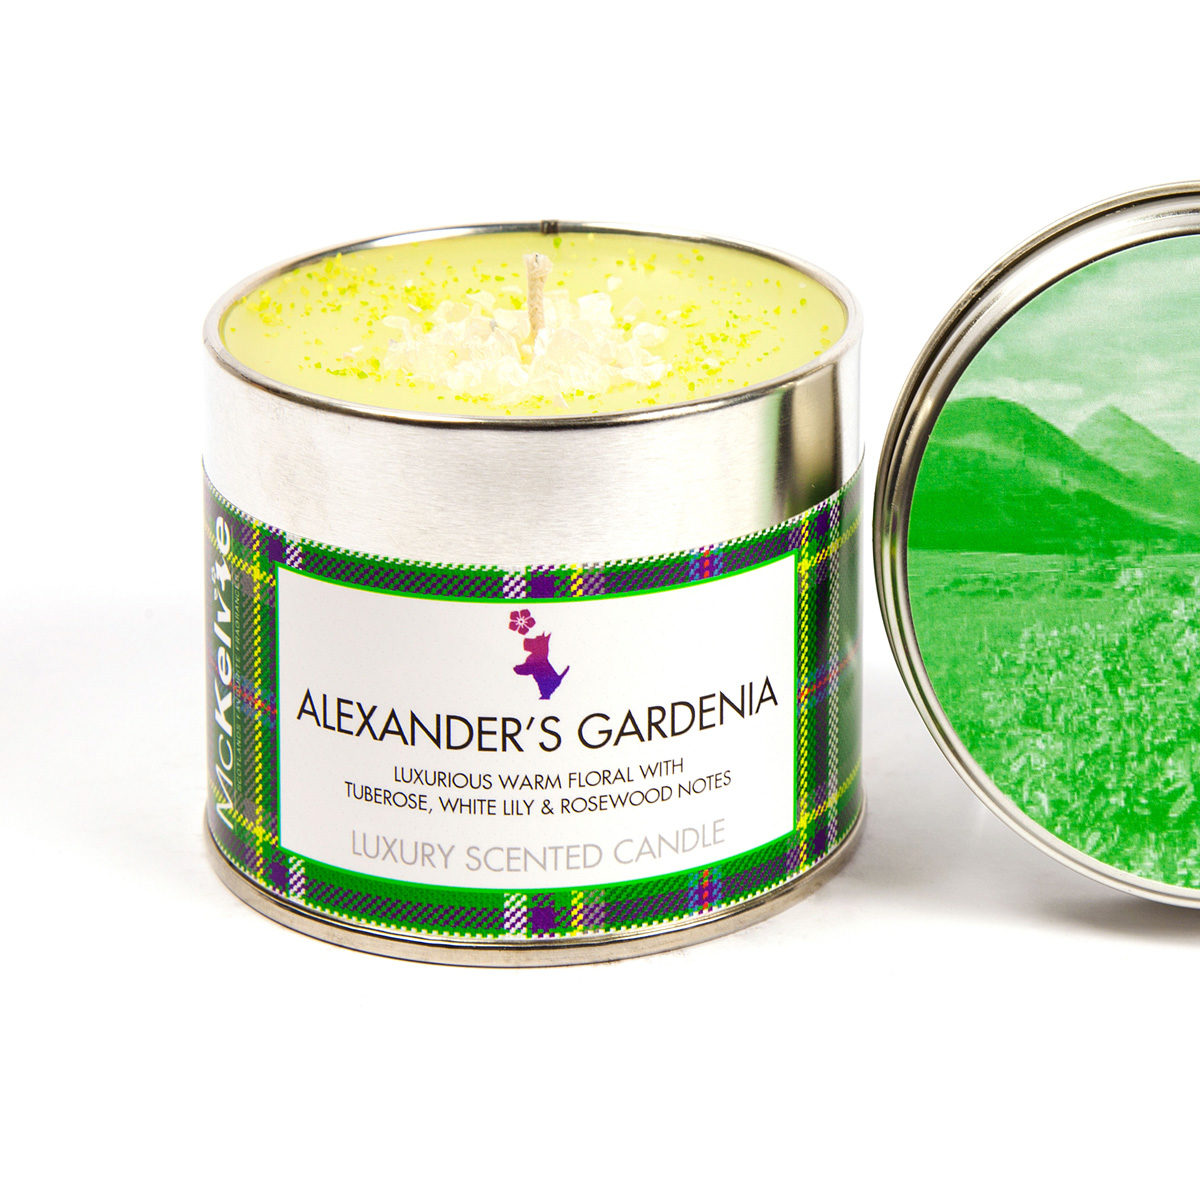 Alexanders Gardenia Scented Candle Tin